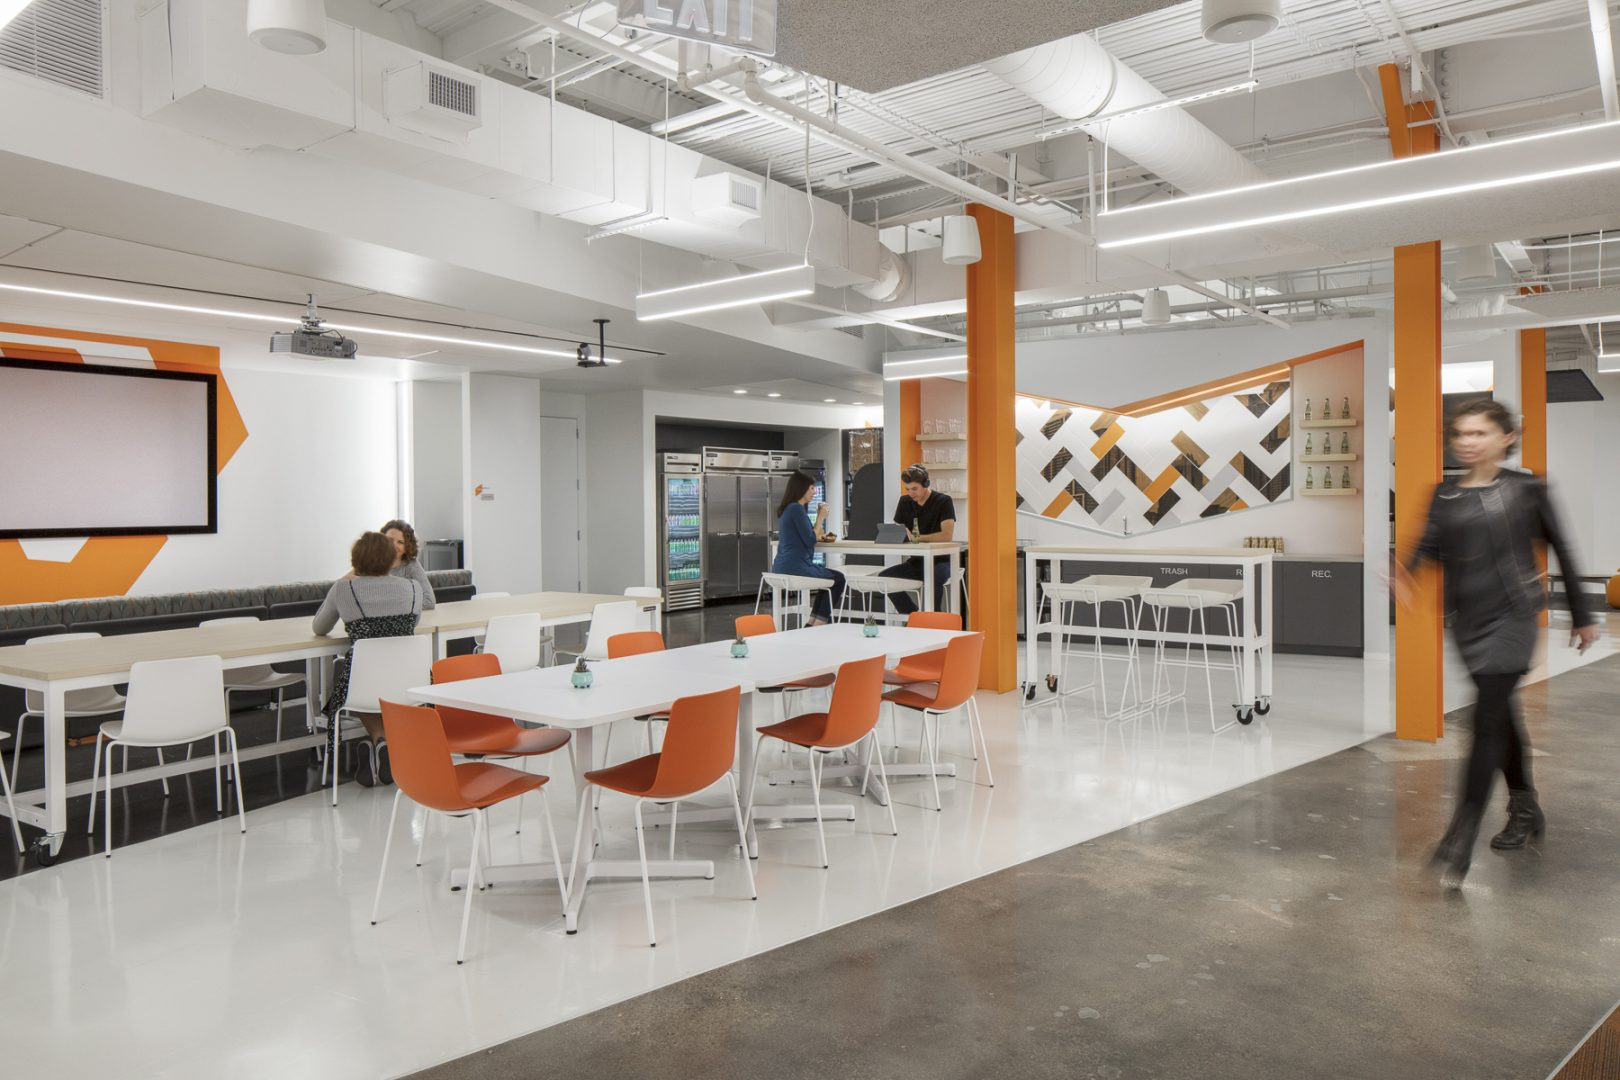 Corporate Technology Interior Design Magento Austin Brearkroom Seating Options